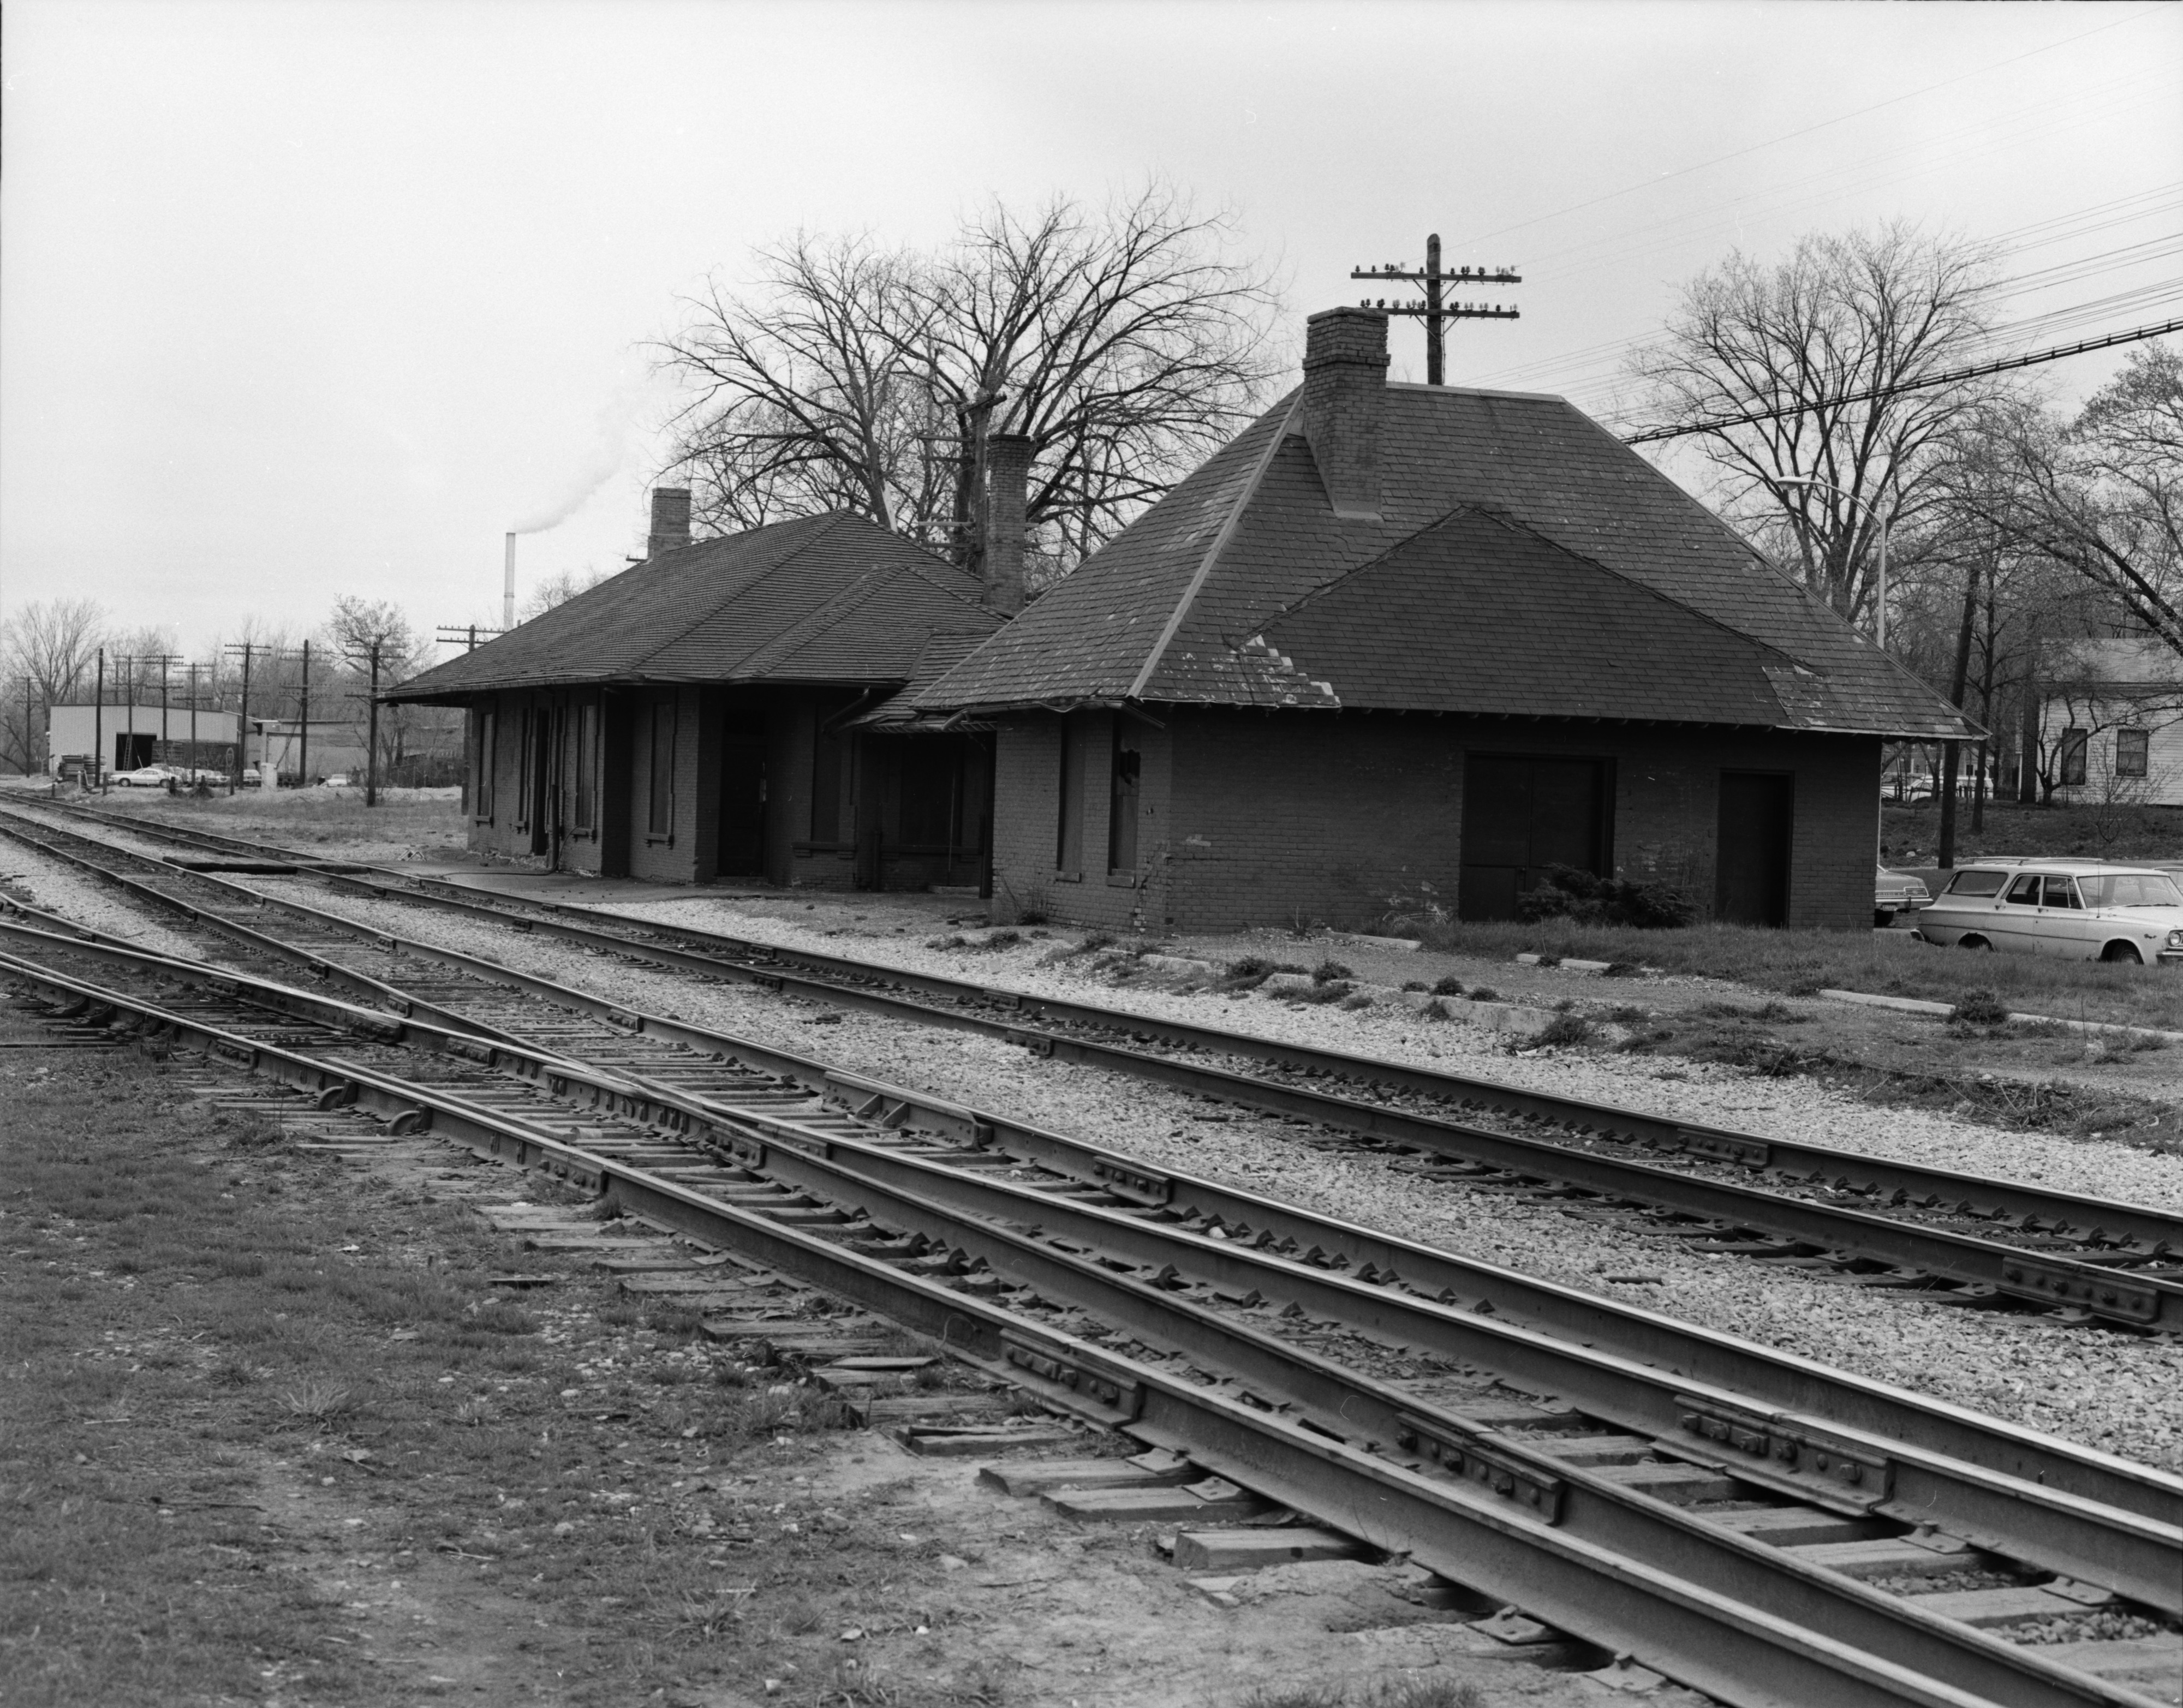 Train station in Ypsilanti's Depot Town, May 1974 image